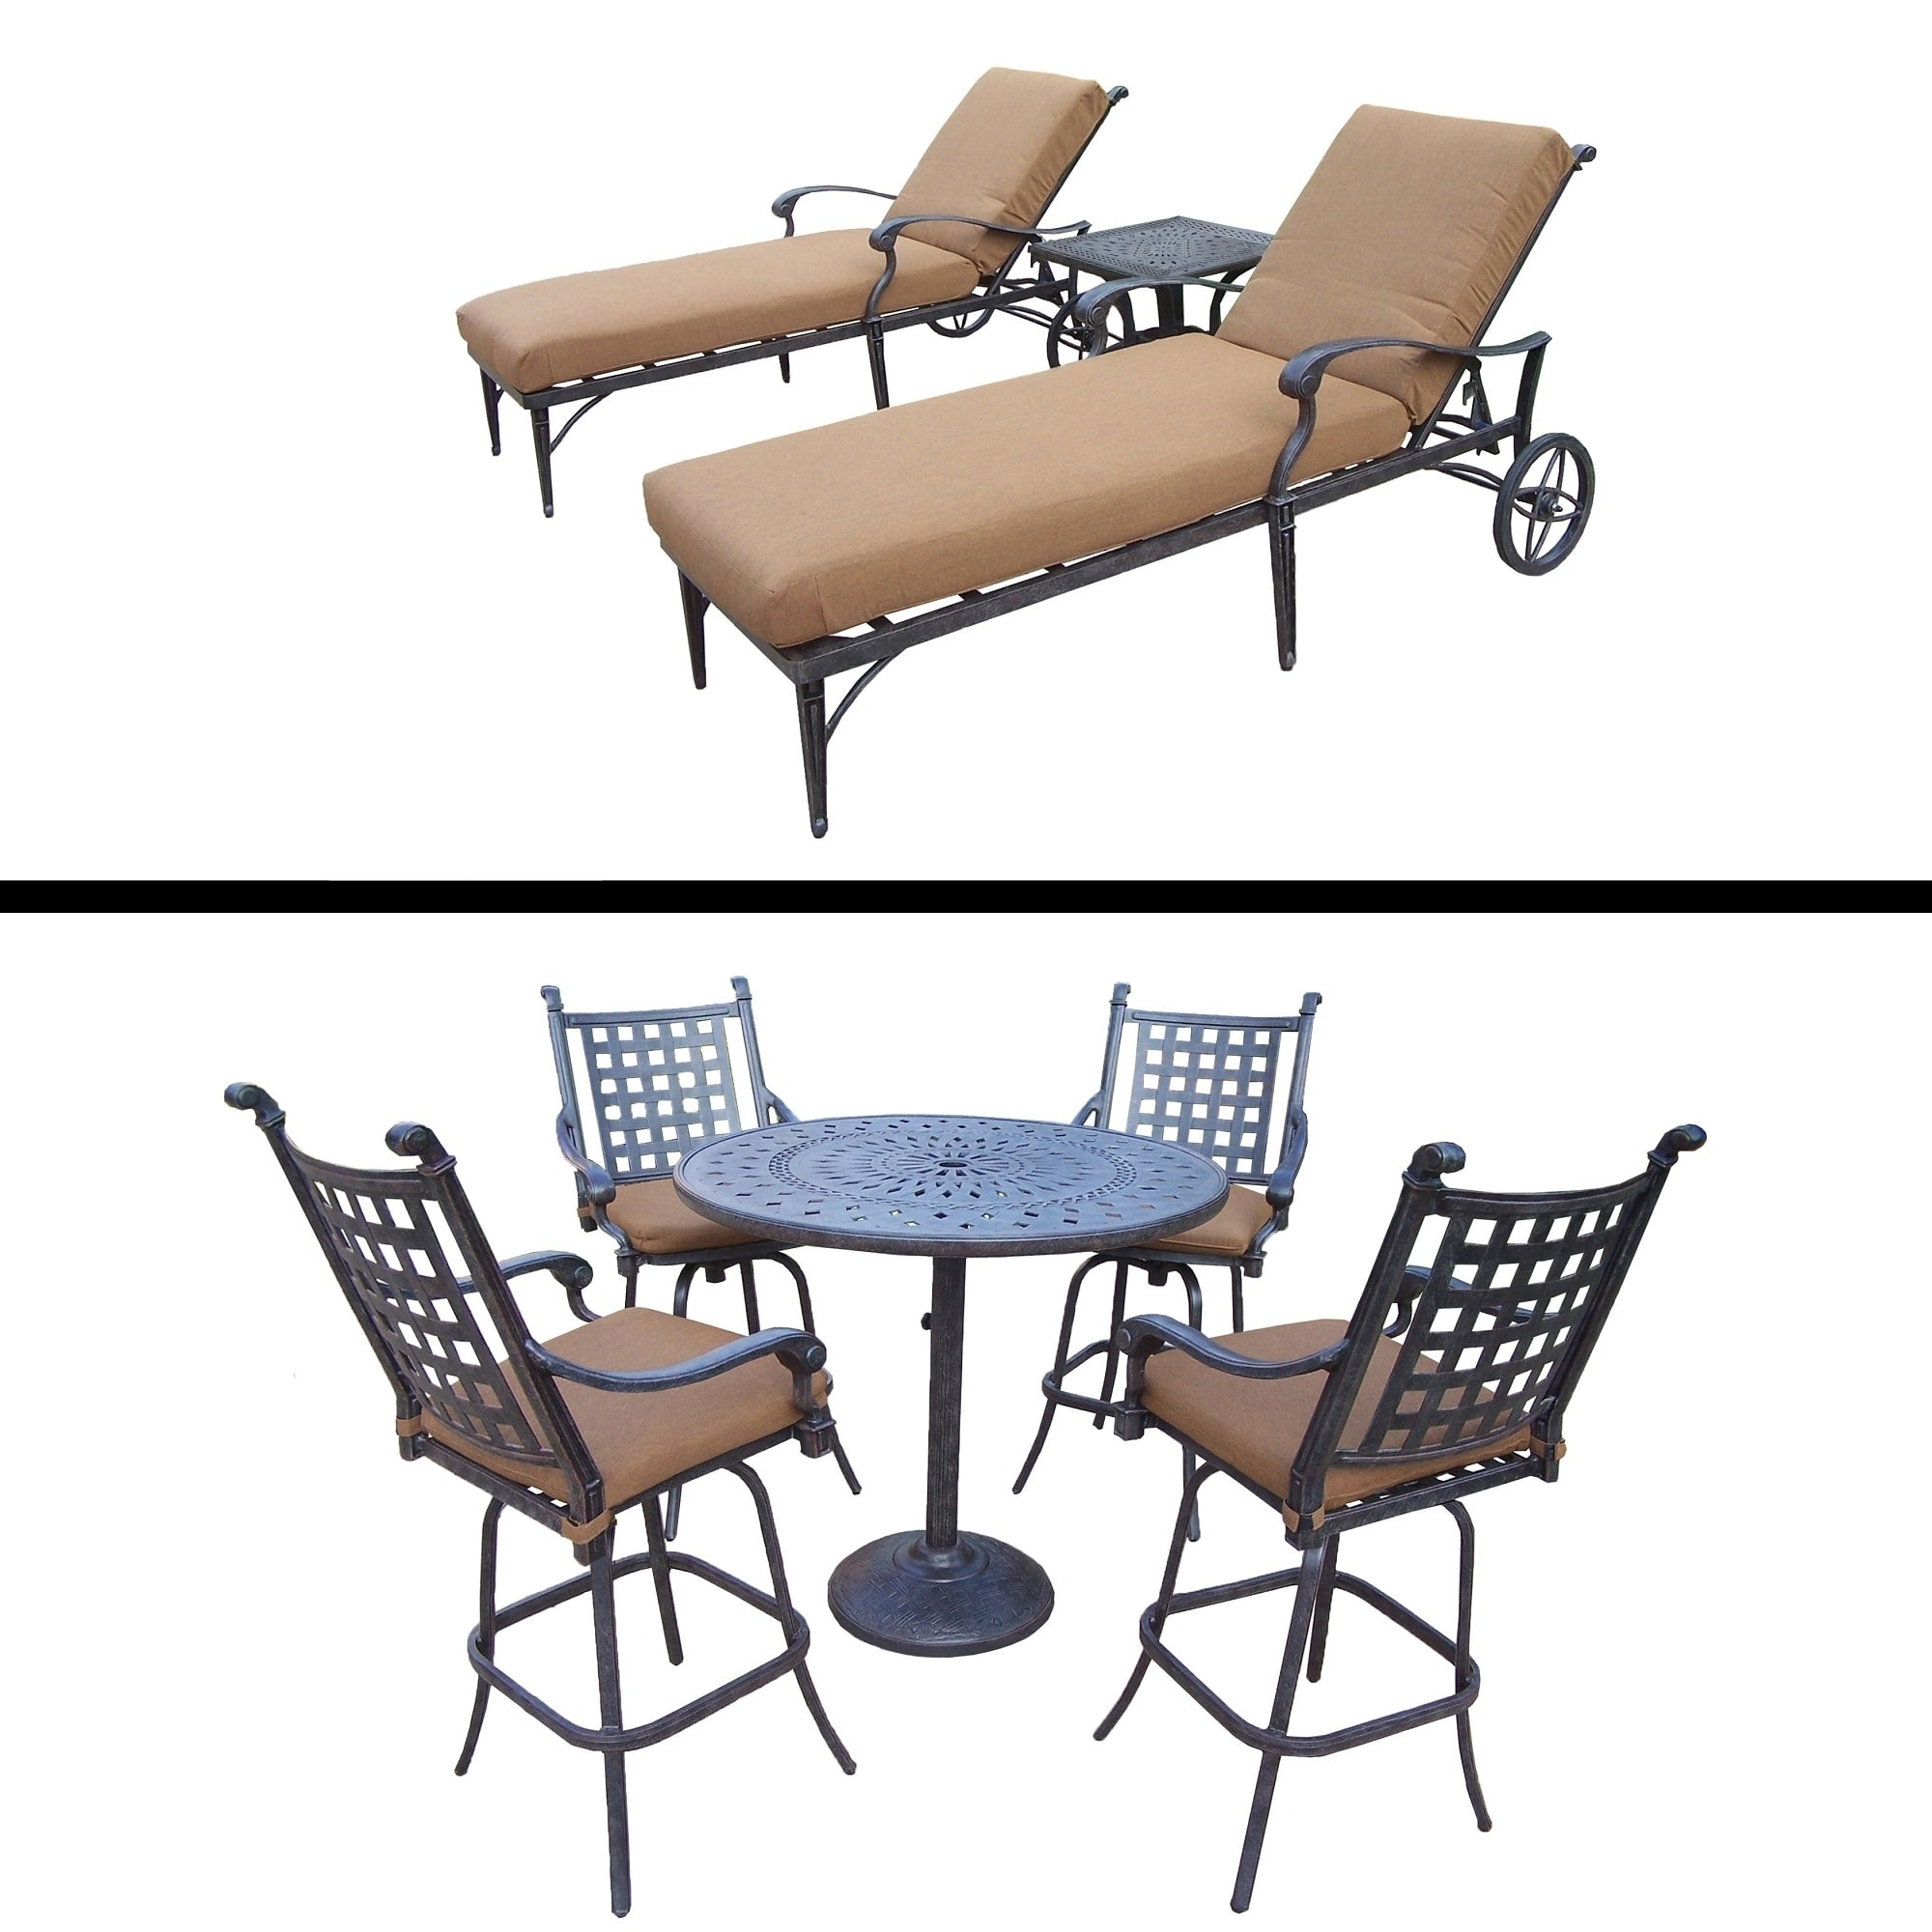 Oakland Living 5 Pc Bar Set and 3 Pc Wheeled Chaise Lounge Set and Cushions. by Overstock